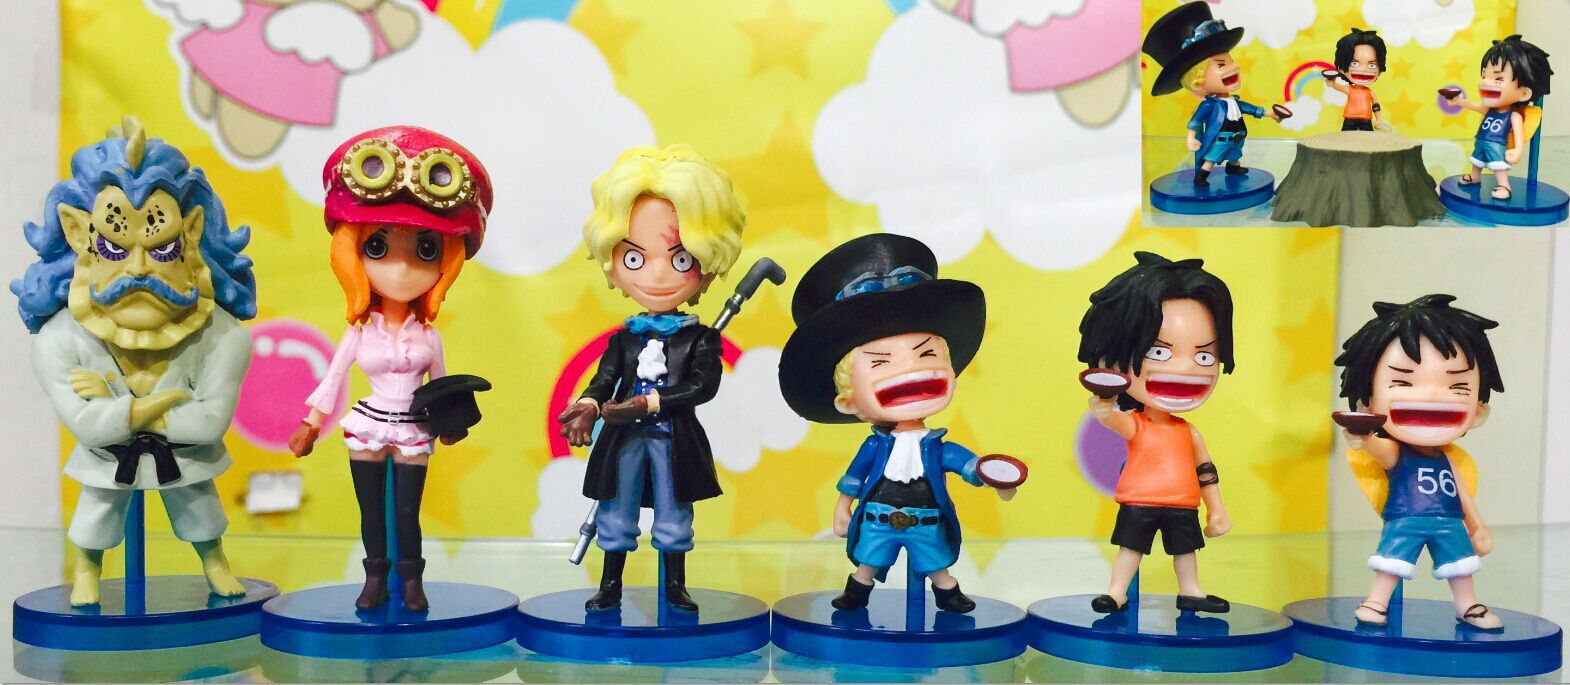 Anime Cartoon One Piece WCF HISTORY OF SABO PVC Action Figures Collectible Model Dolls Toys 6pcs/set KT472<br><br>Aliexpress